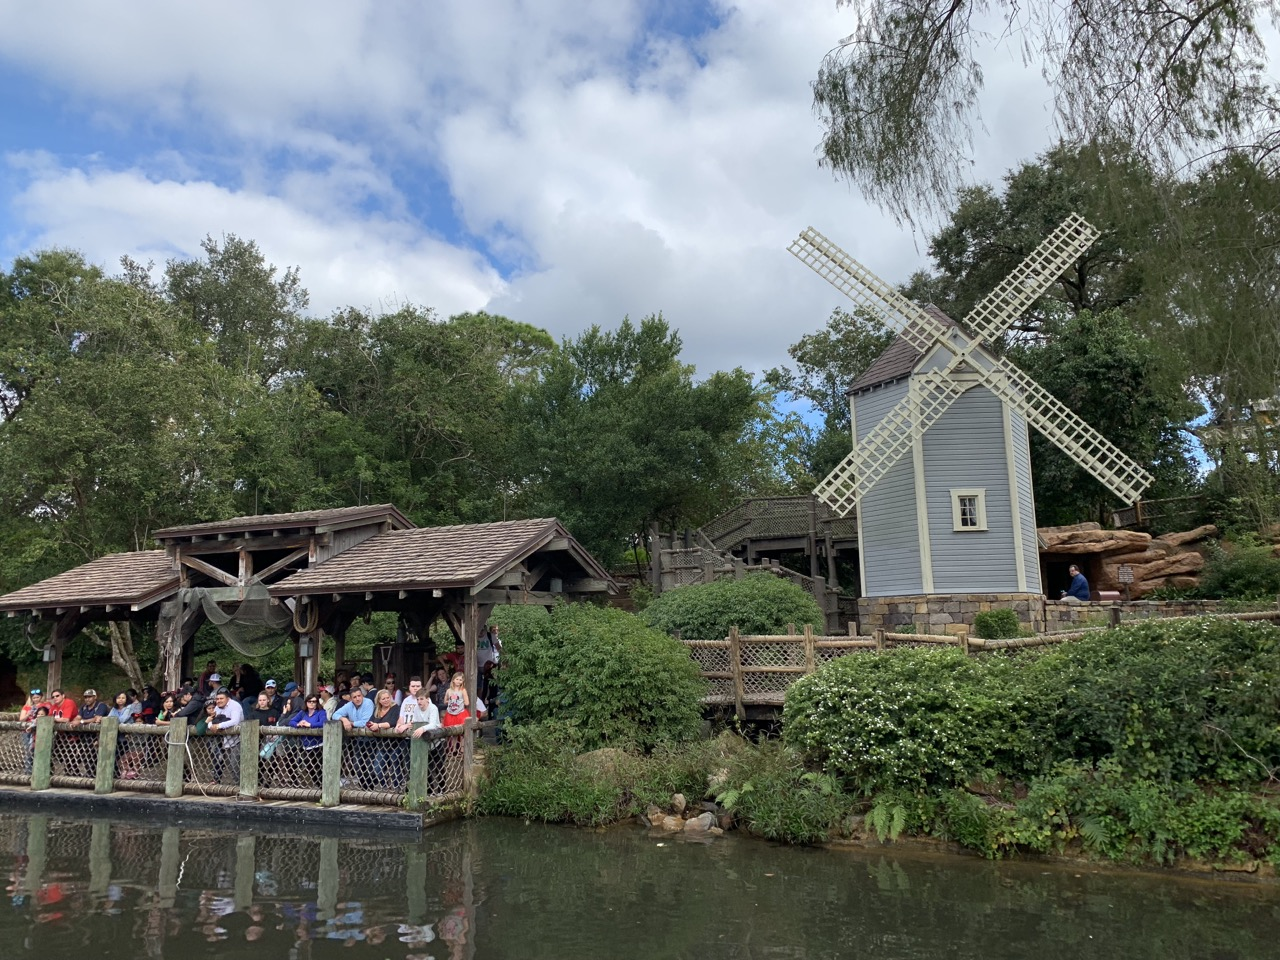 magic kingdom rides 21 tom sawyer island.jpeg